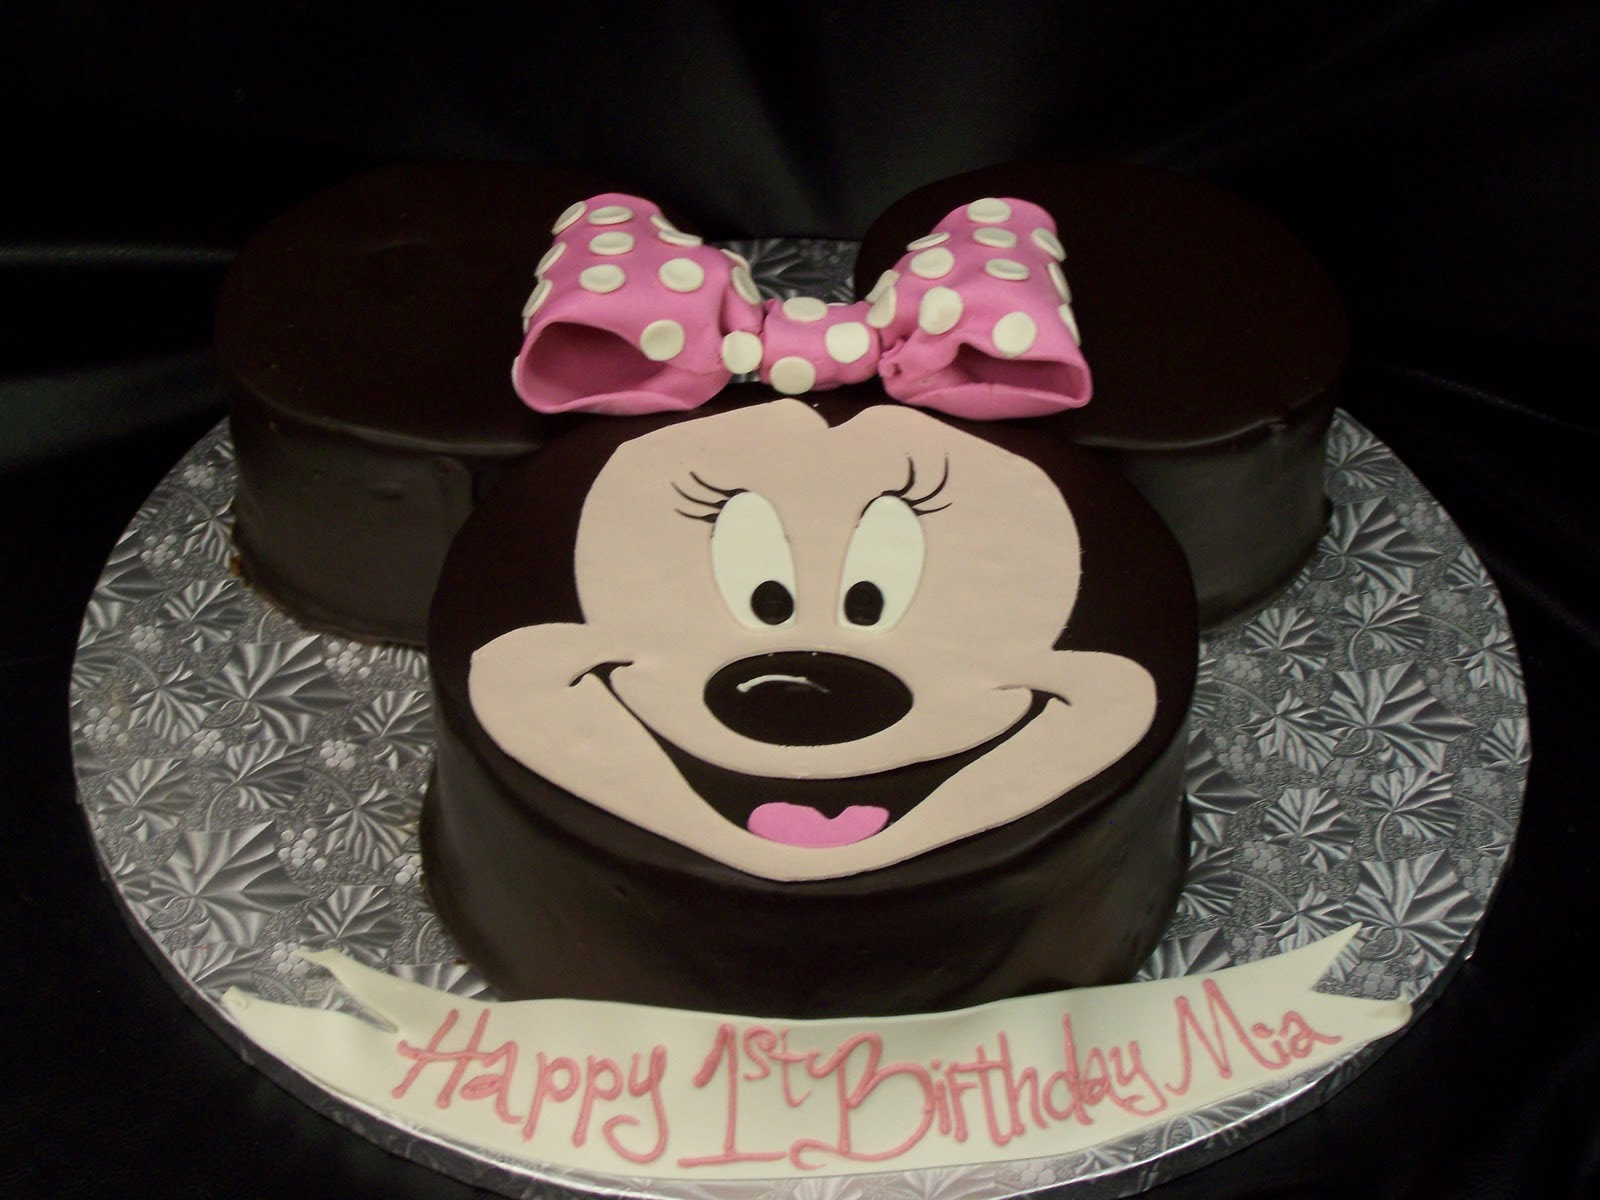 Sensational 1St Birthday Minnie Mouse Cake 1St Birthday Ideas Funny Birthday Cards Online Inifodamsfinfo